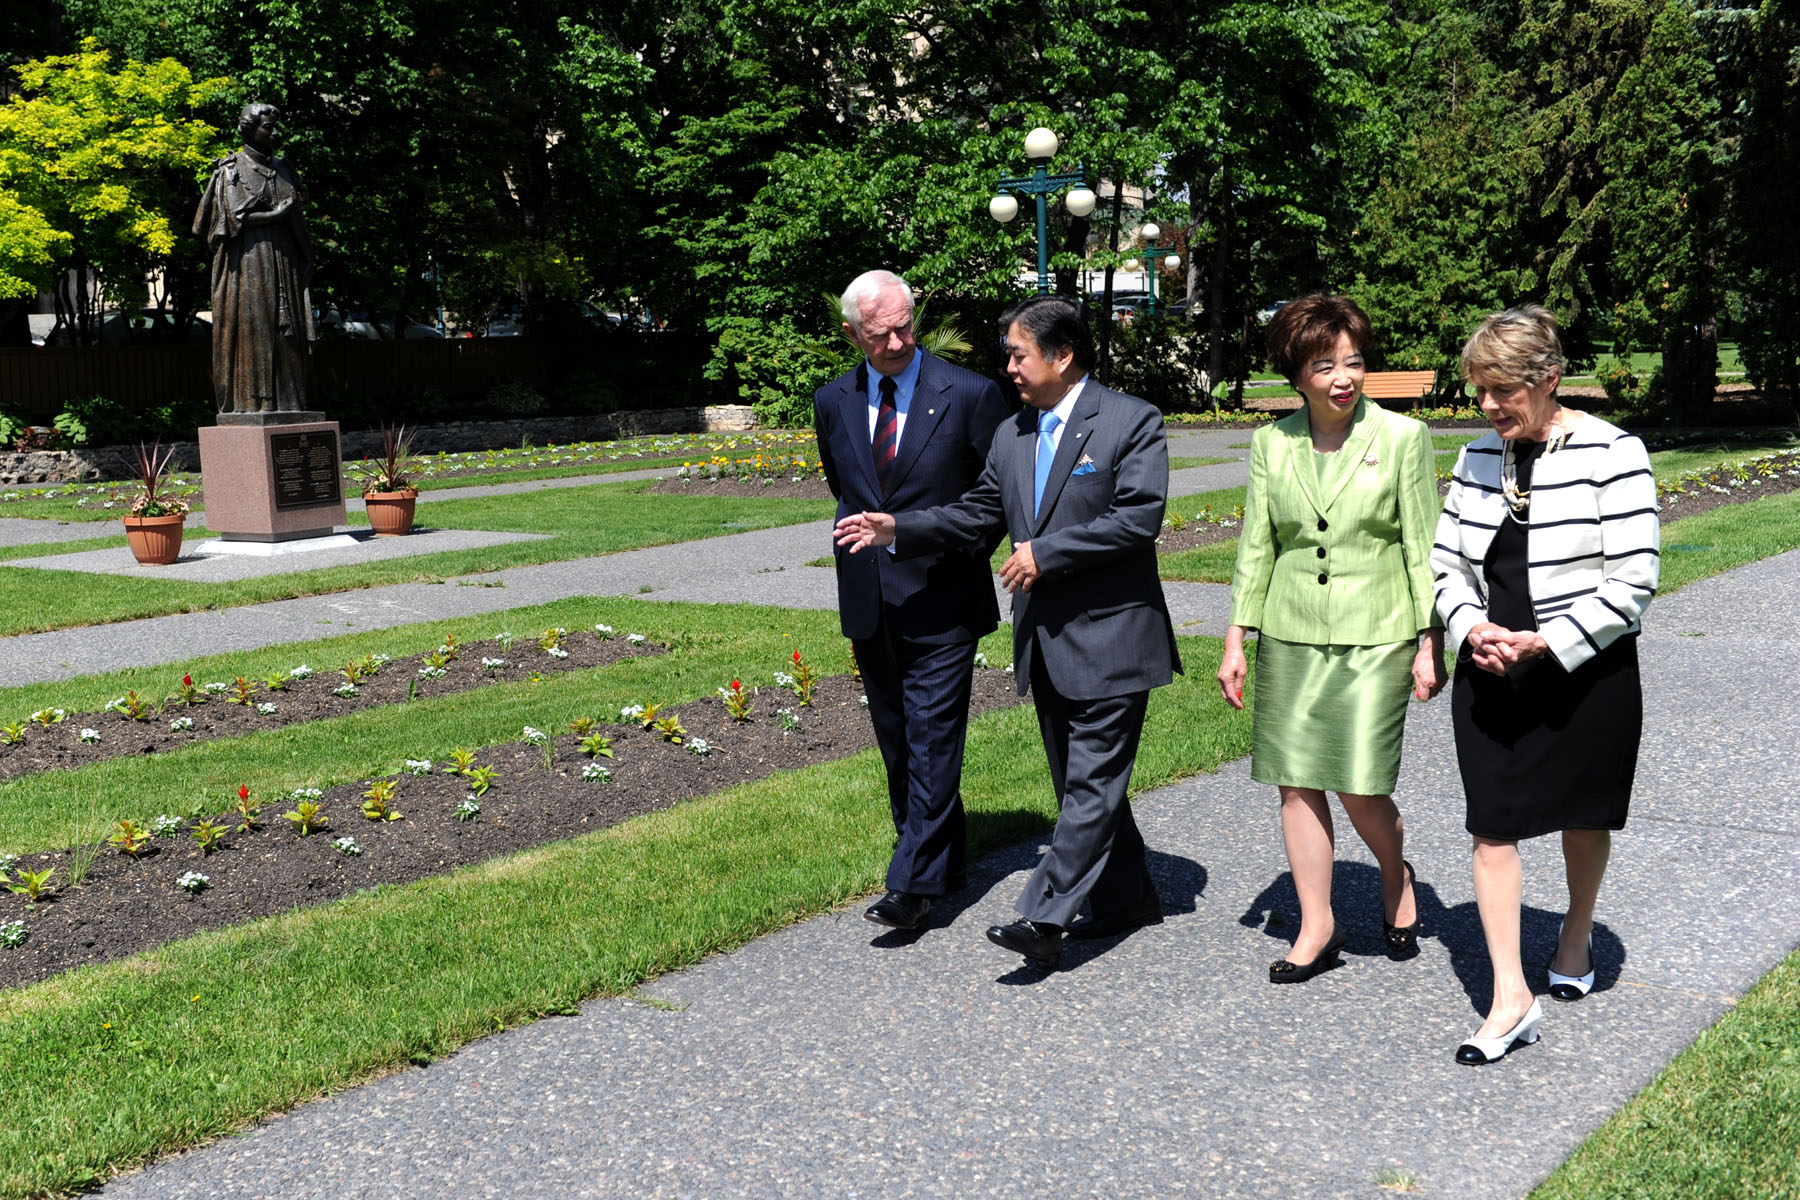 Their Excellencies, accompanied by Their Honours the Honourable Philip Lee, Lieutenant Governor of Manitoba, and his spouse, Mrs. Anita Lee, walking in the gardens at Government House.